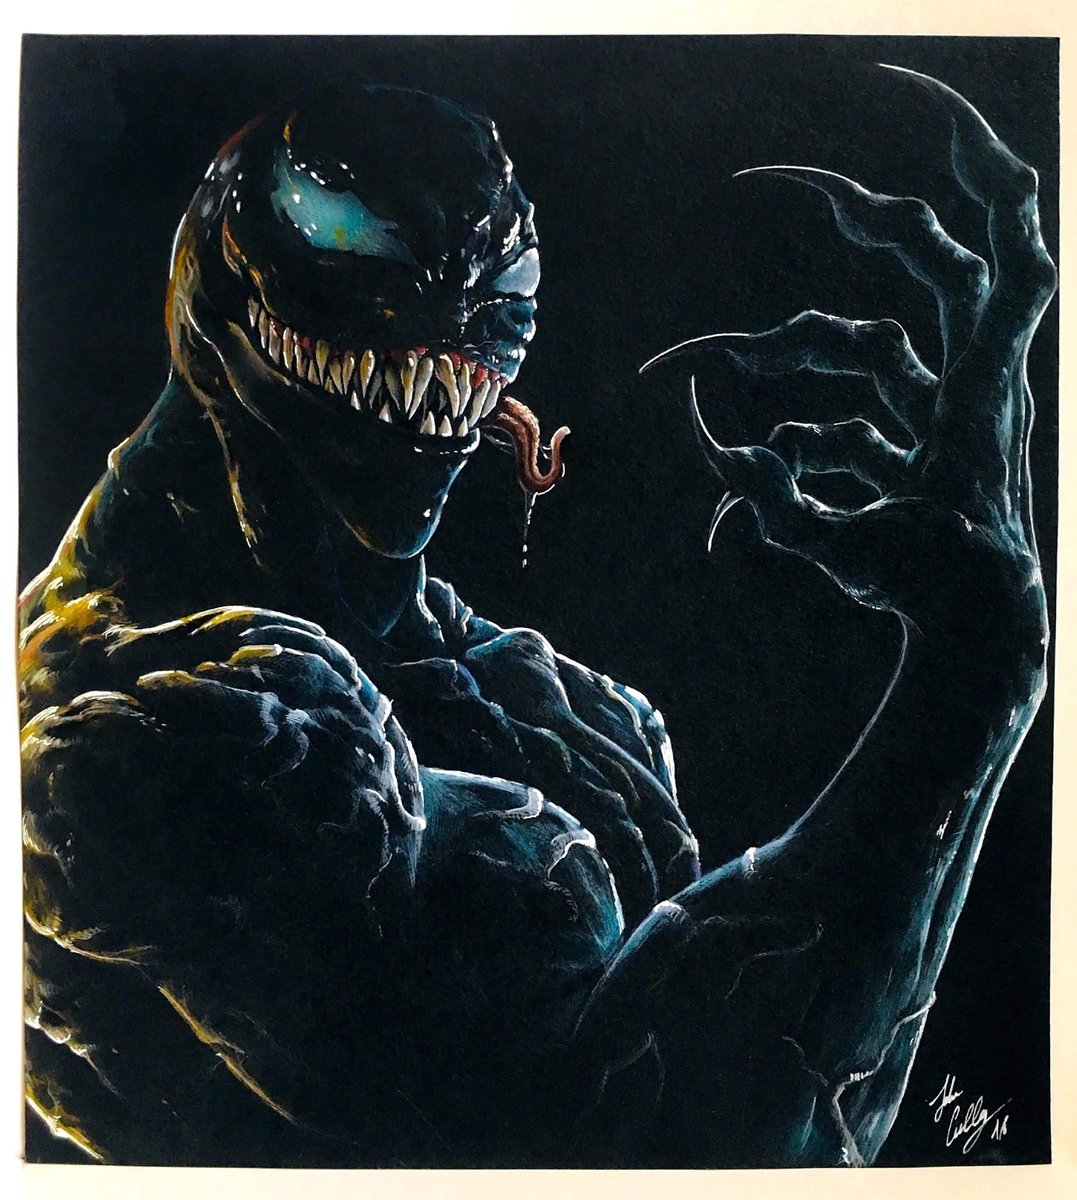 Leily Nocturnadraco On Twitter We Are Venom My Tribute To The